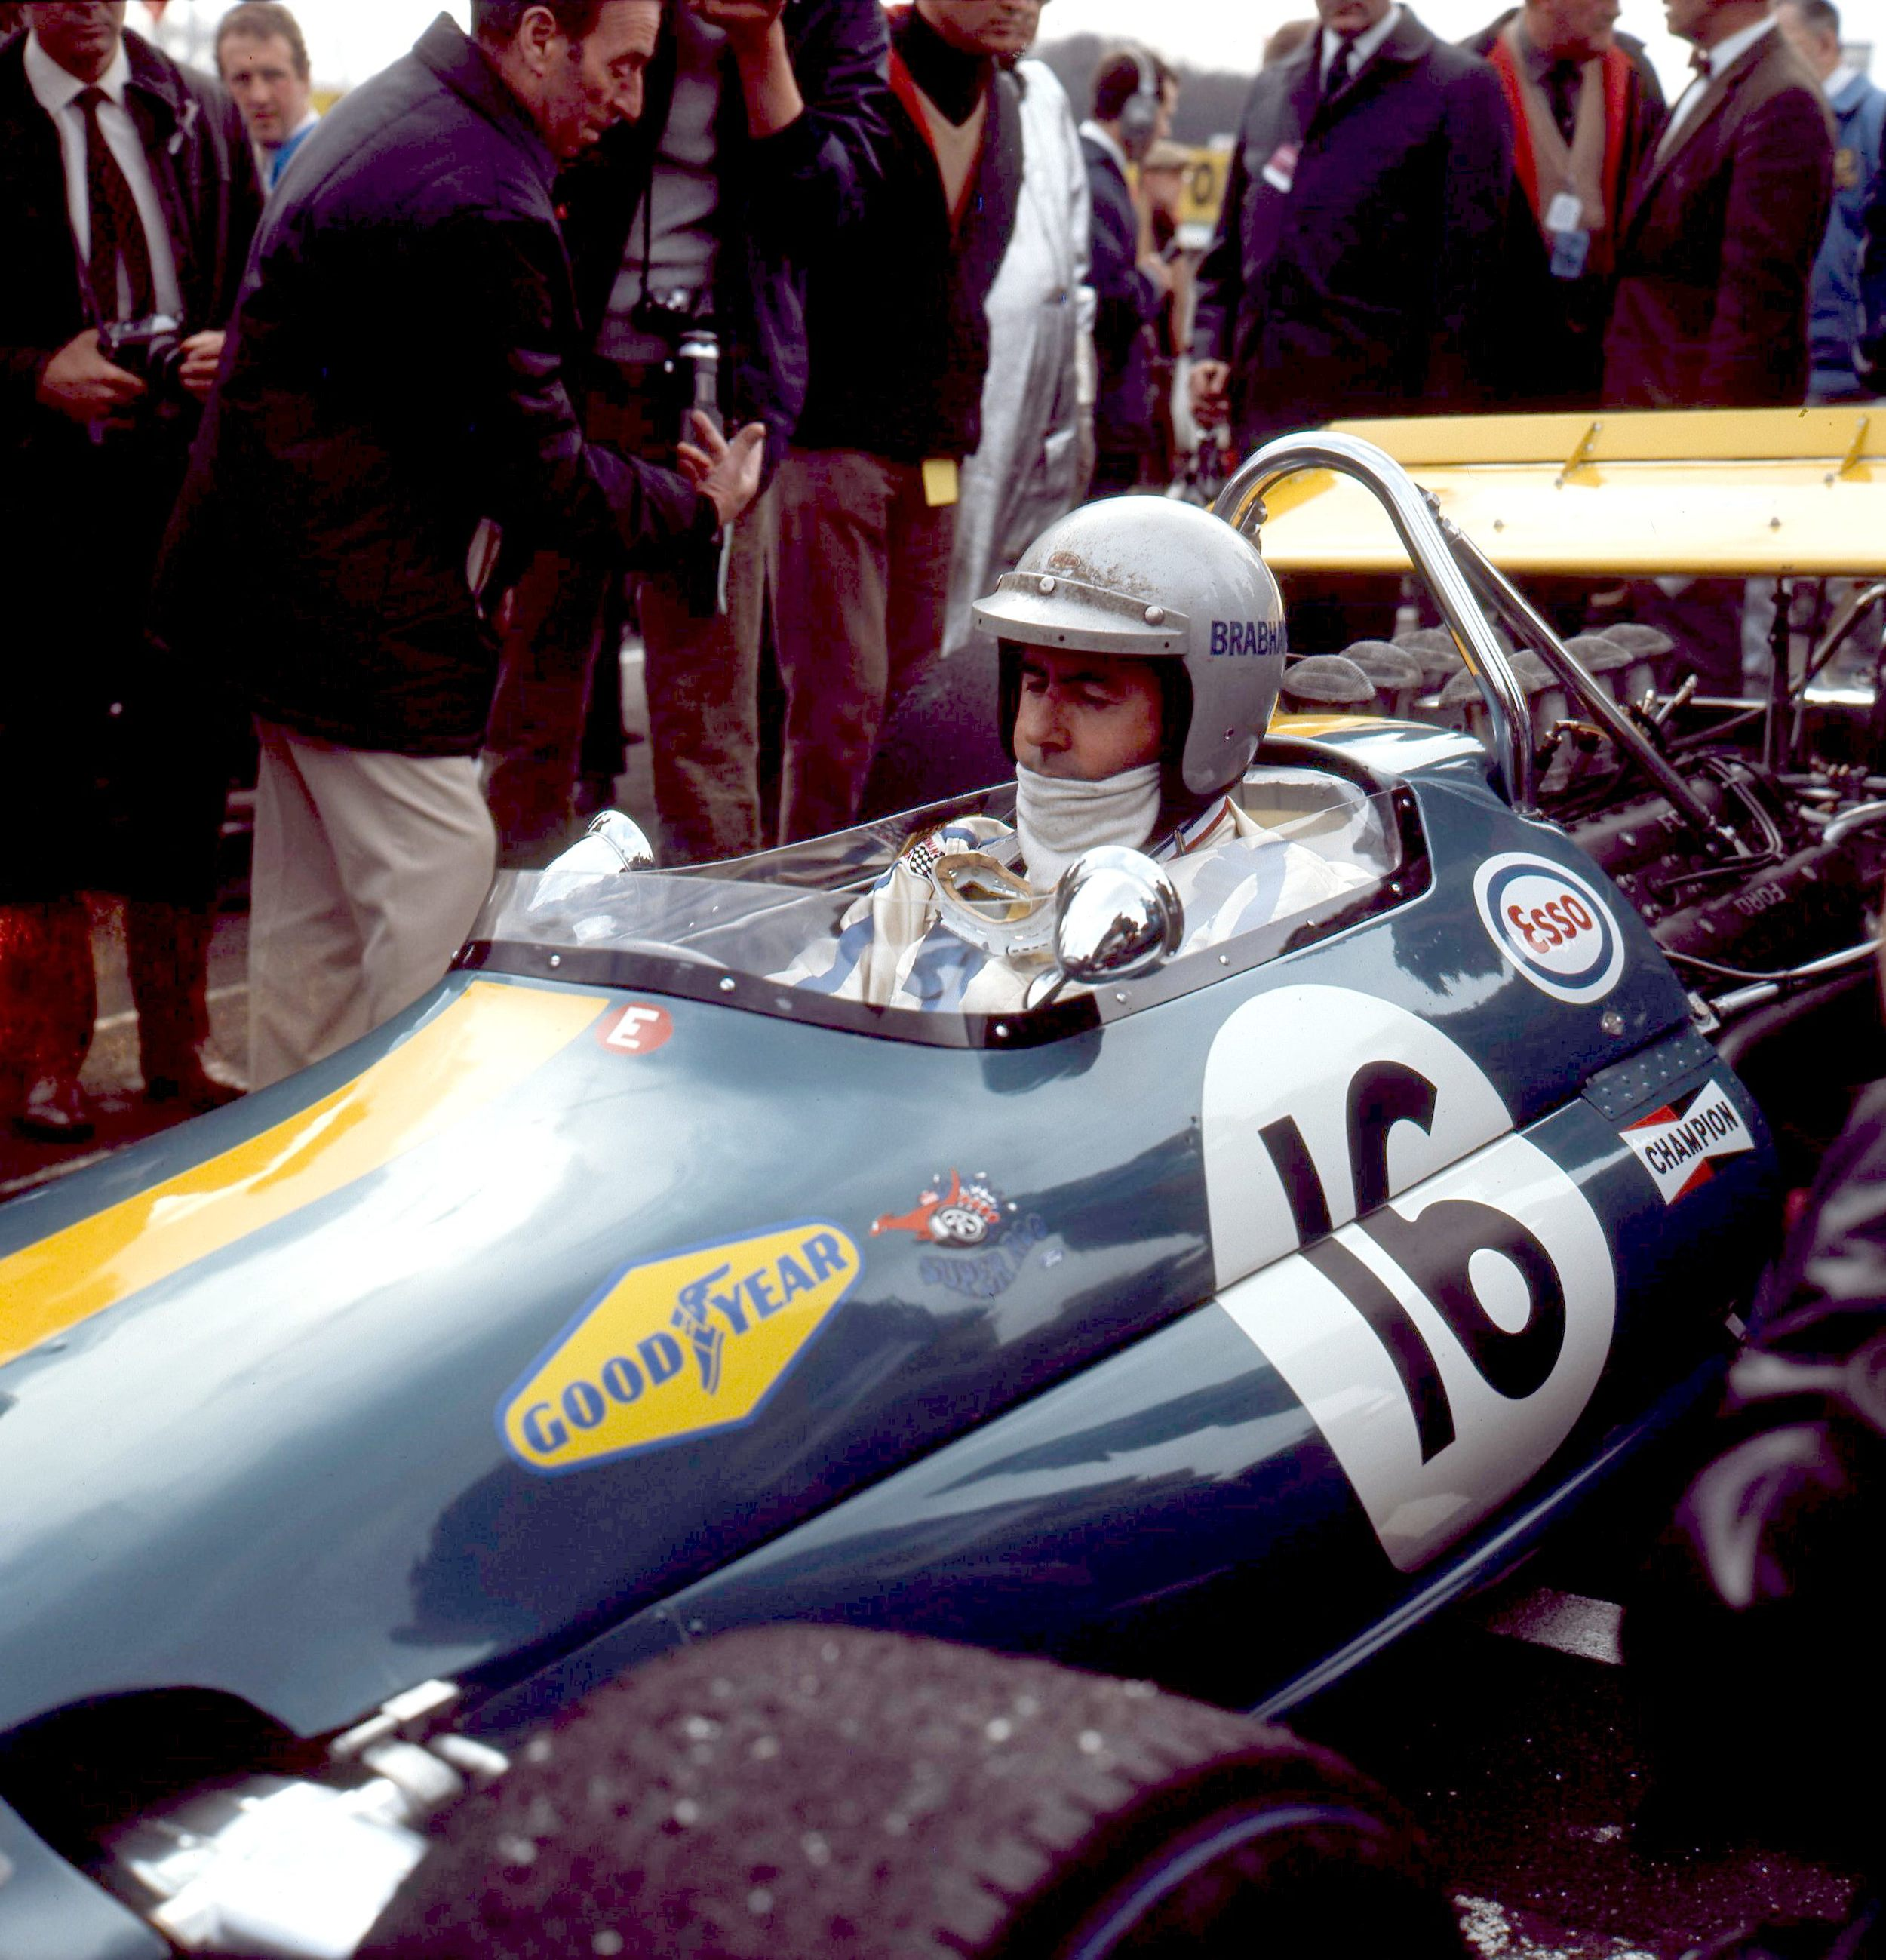 Jack Brabham in a later Brabham-Ford Cosworth